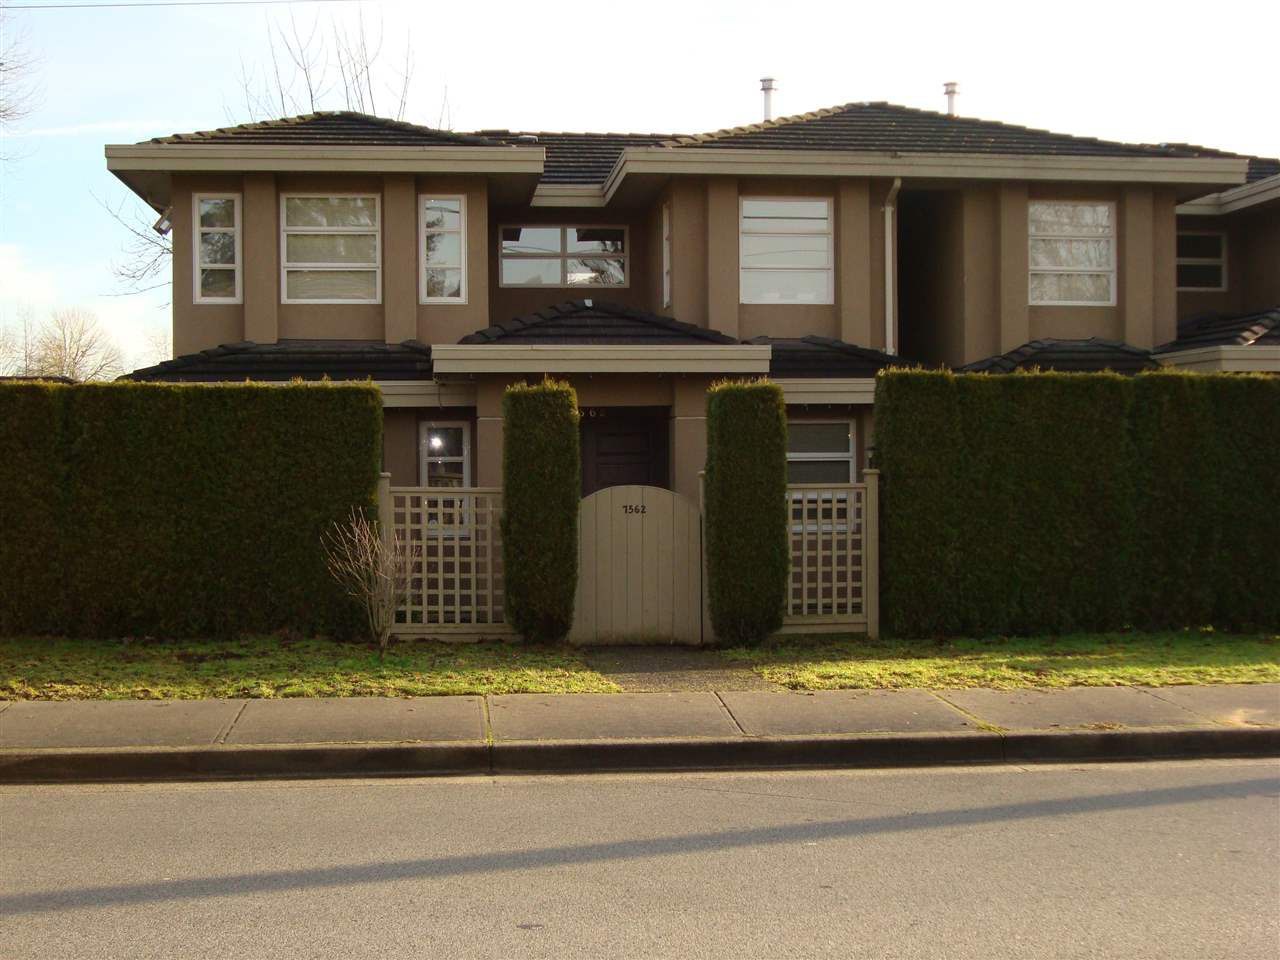 Main Photo: 7562 16TH Avenue in Burnaby: Edmonds BE House 1/2 Duplex for sale (Burnaby East)  : MLS®# R2022922